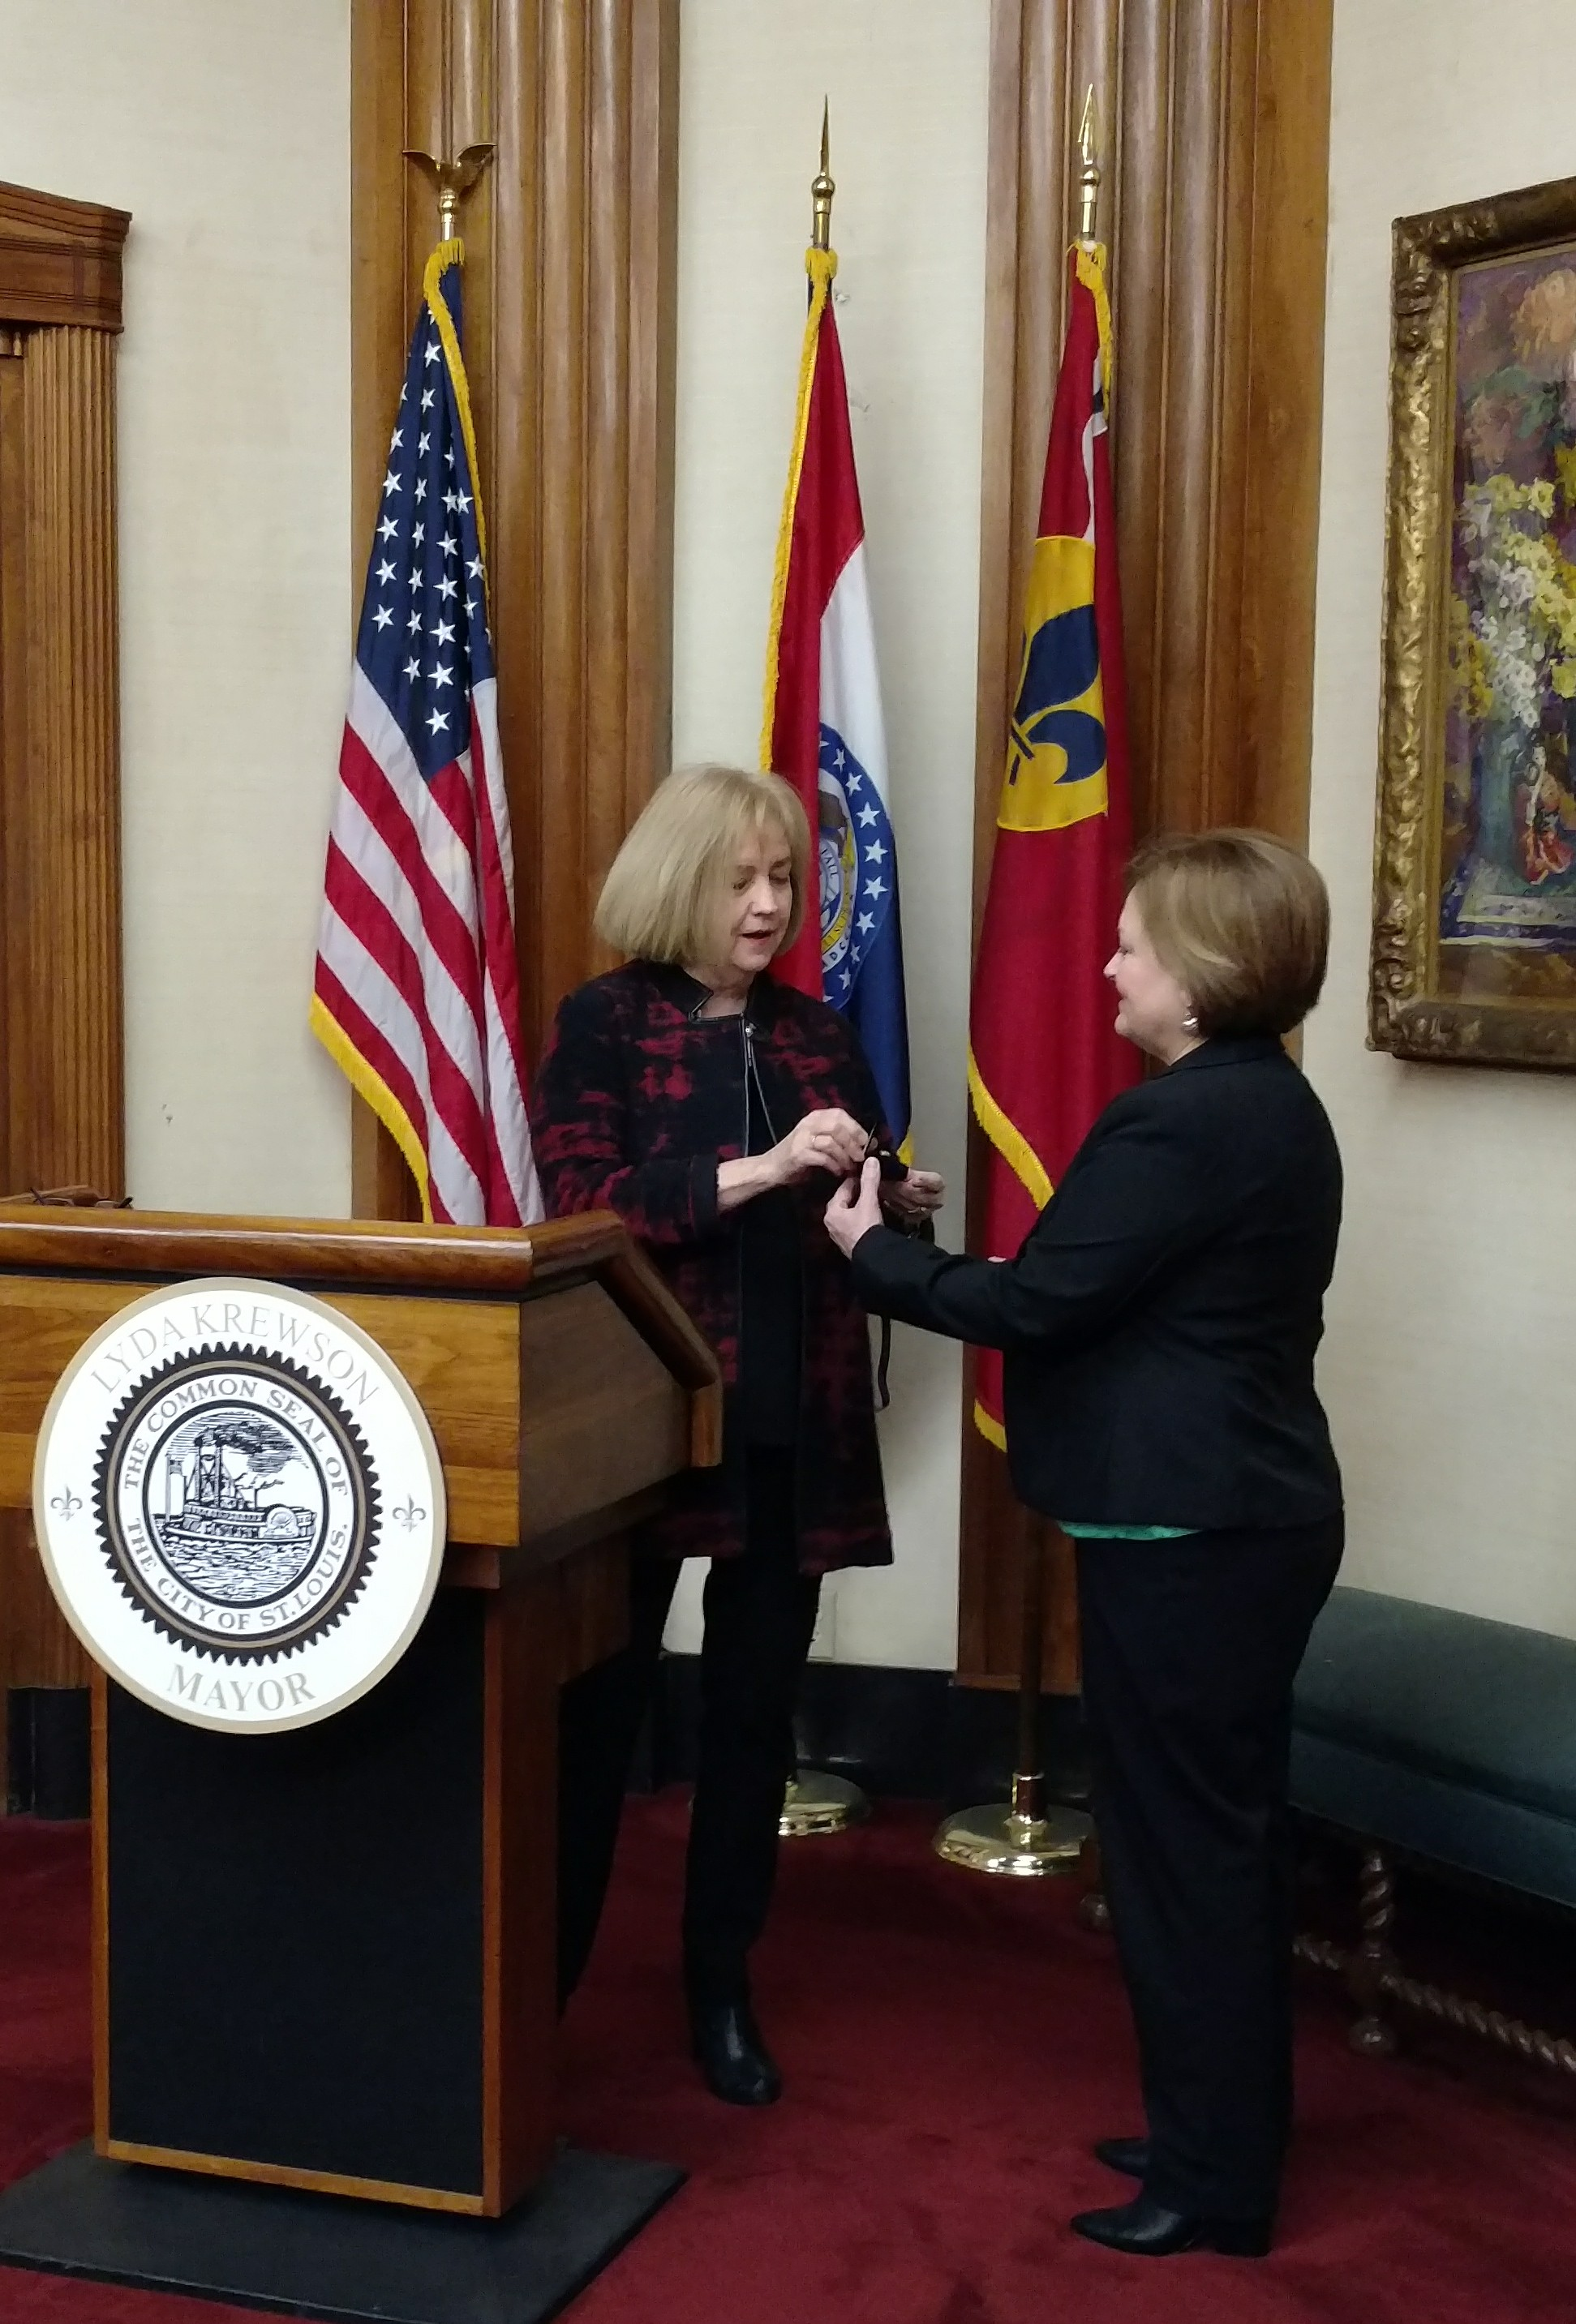 Beth Seright of the Comptroller's Office receives her 40-year service pin